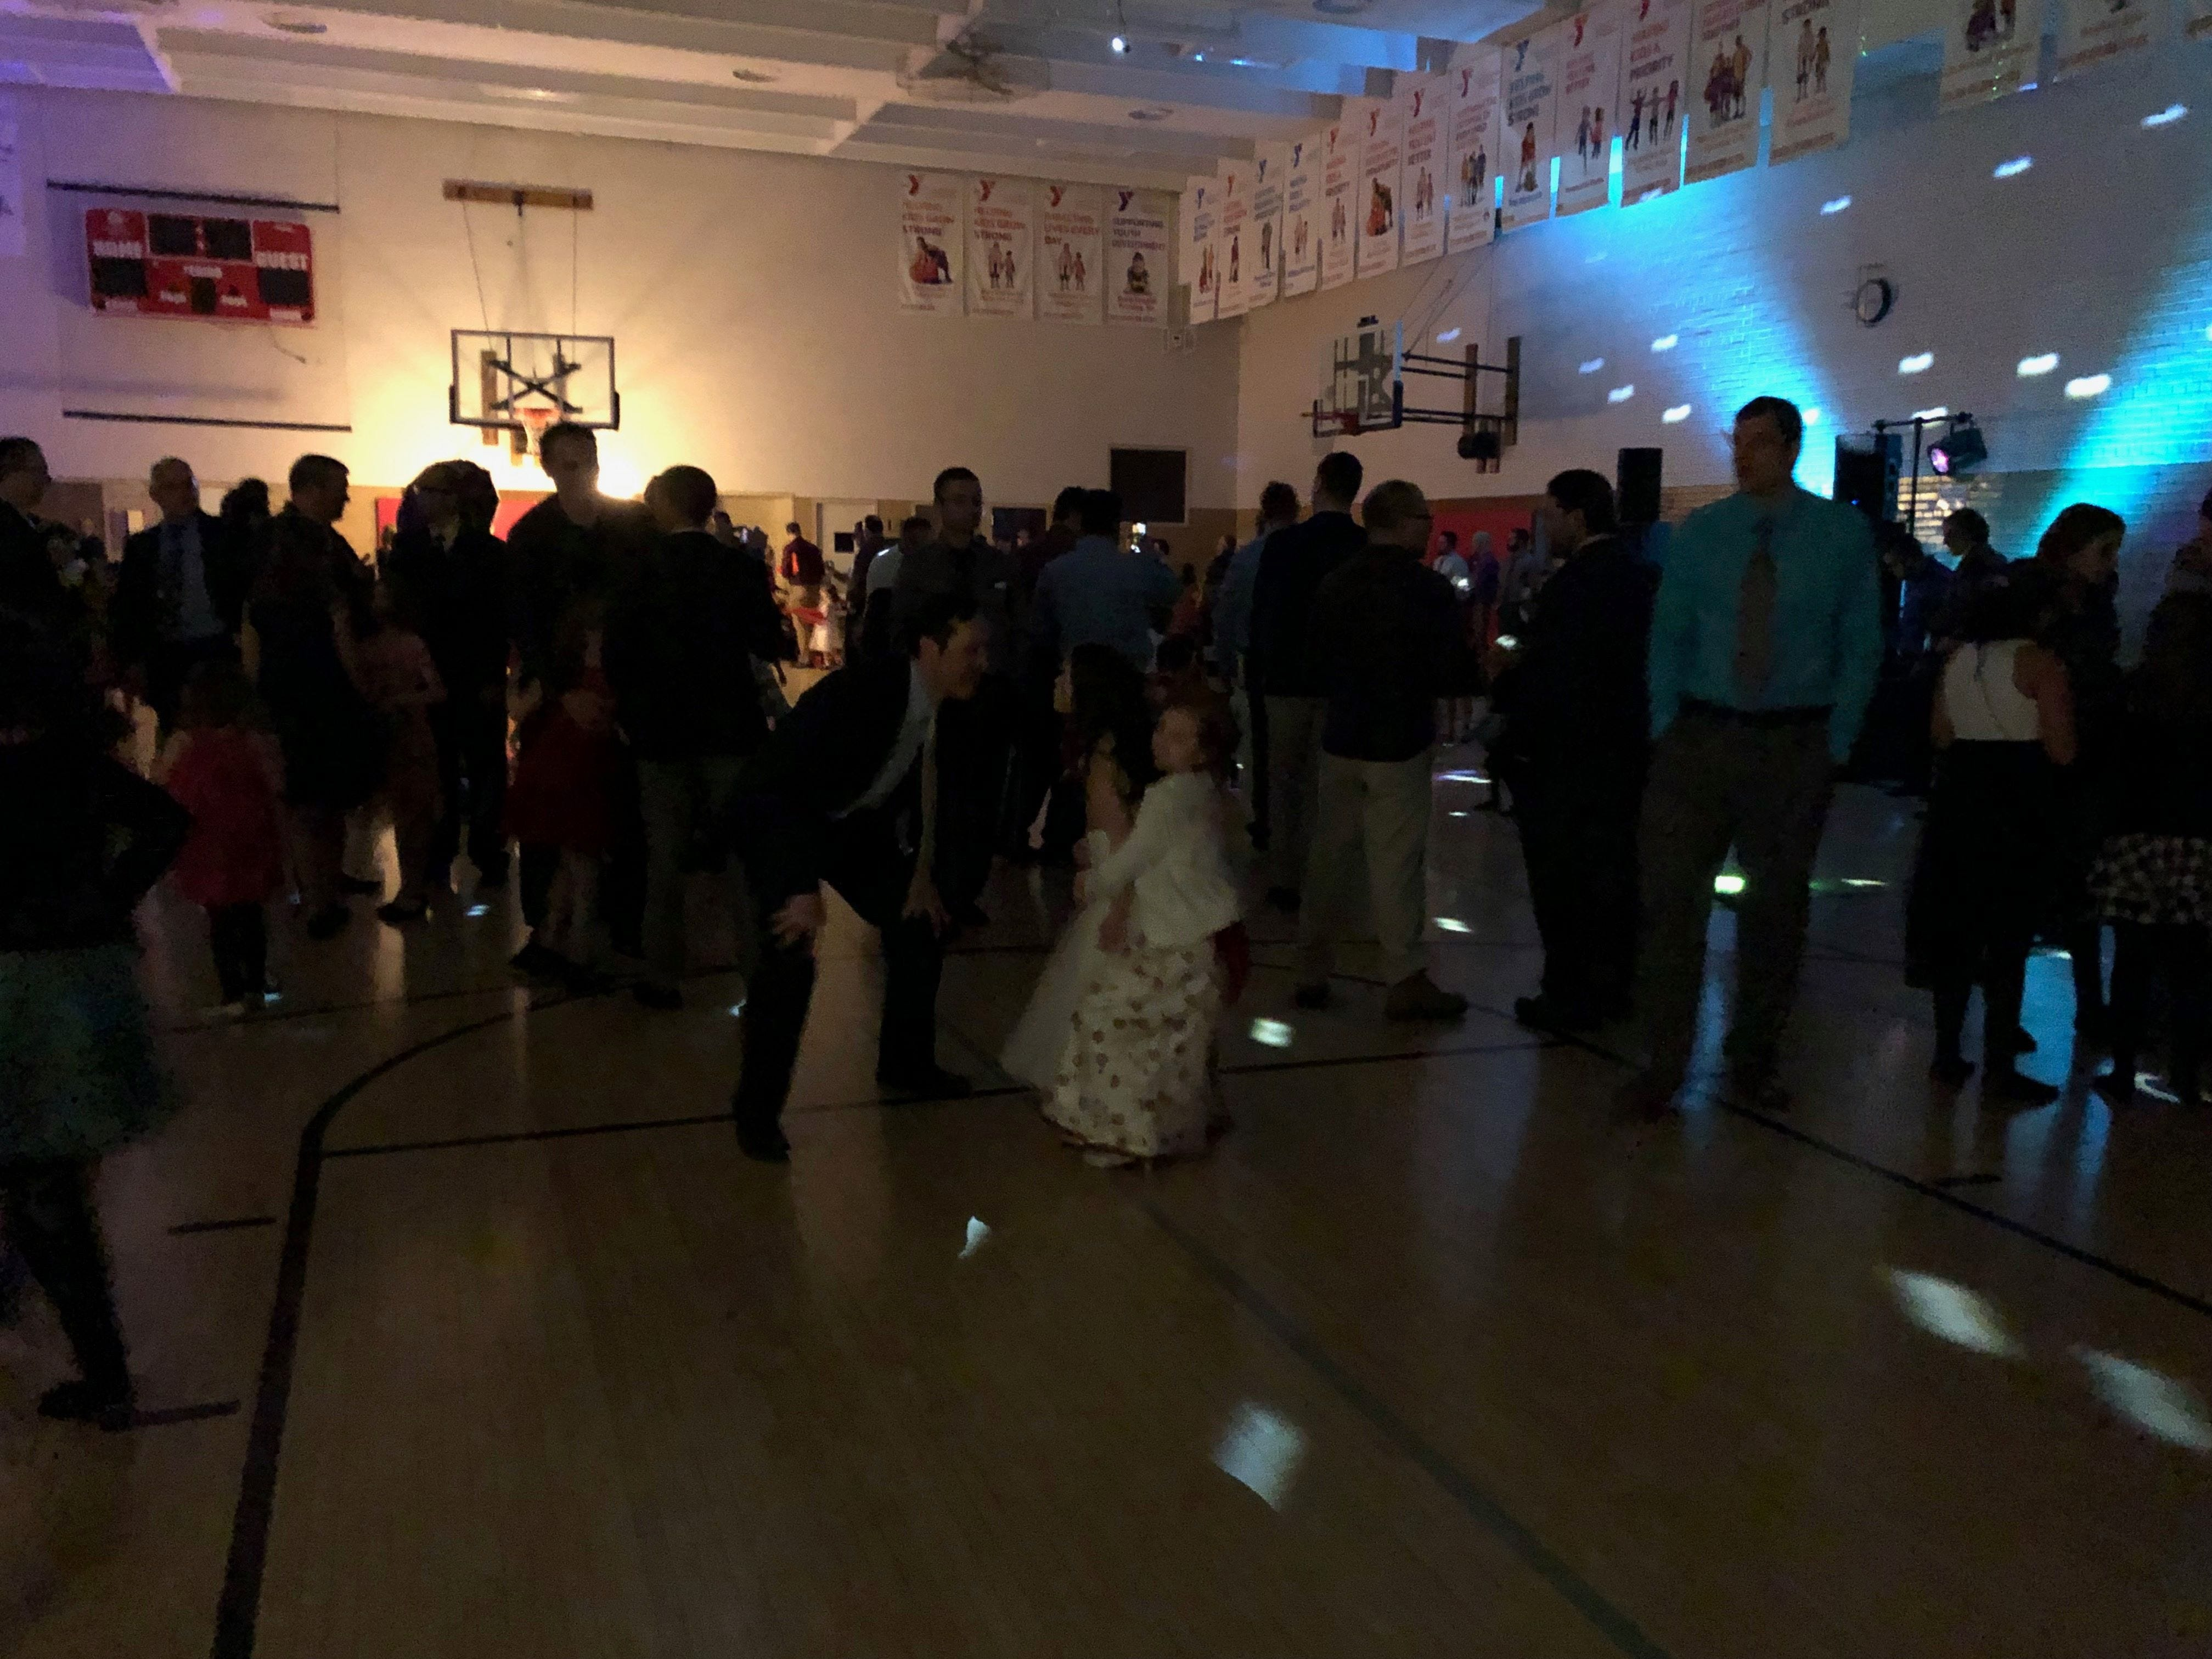 Fathers and daughters enjoy a night out at the annual Woodson YMCA Father Daughter dance, which included plenty of space to twirl around on the dance floor.